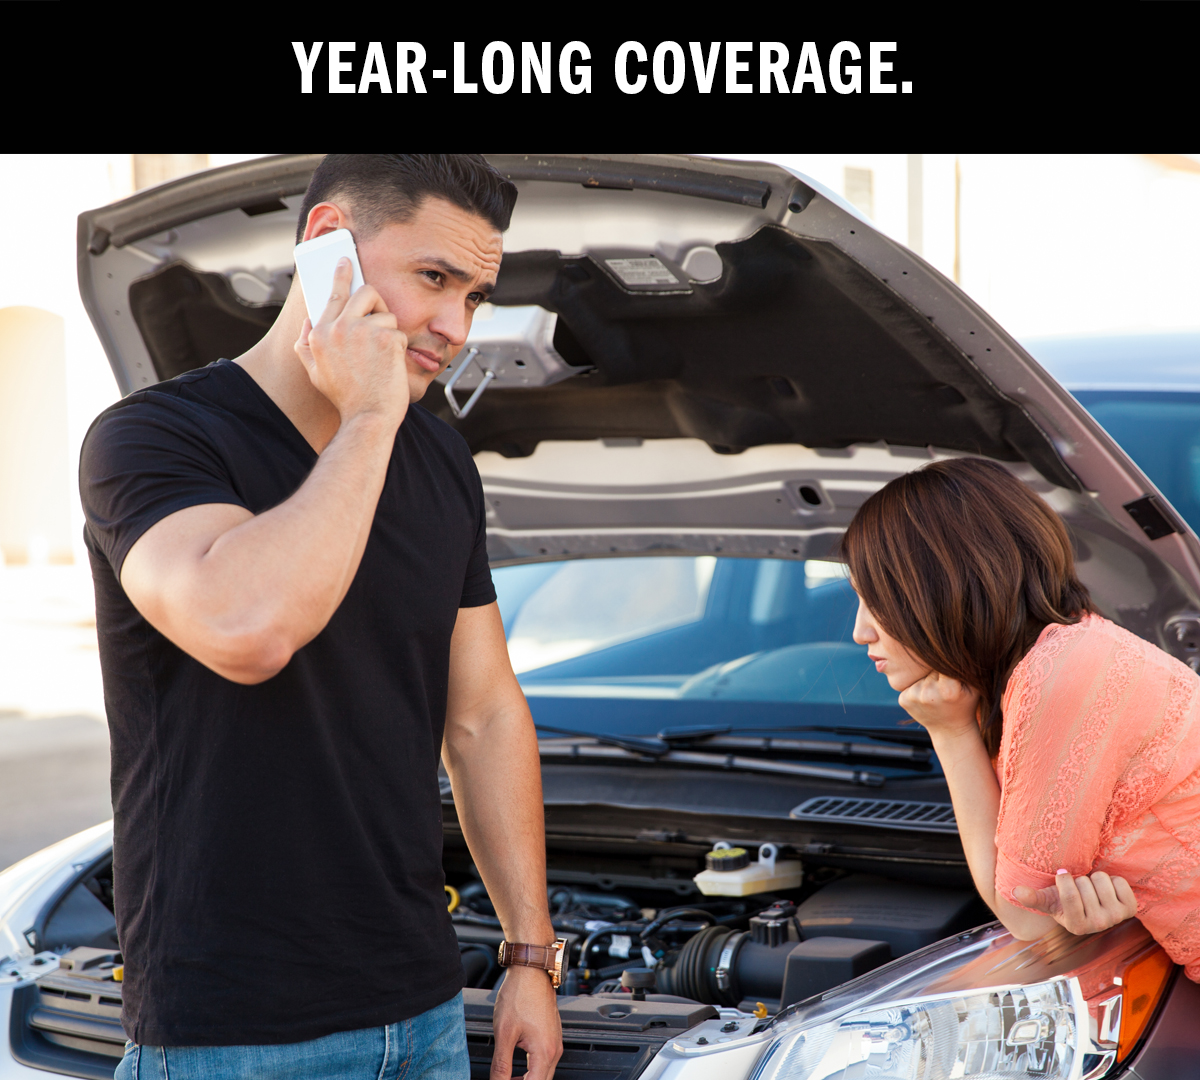 Year-long Coverage | Airpark Auto Pros